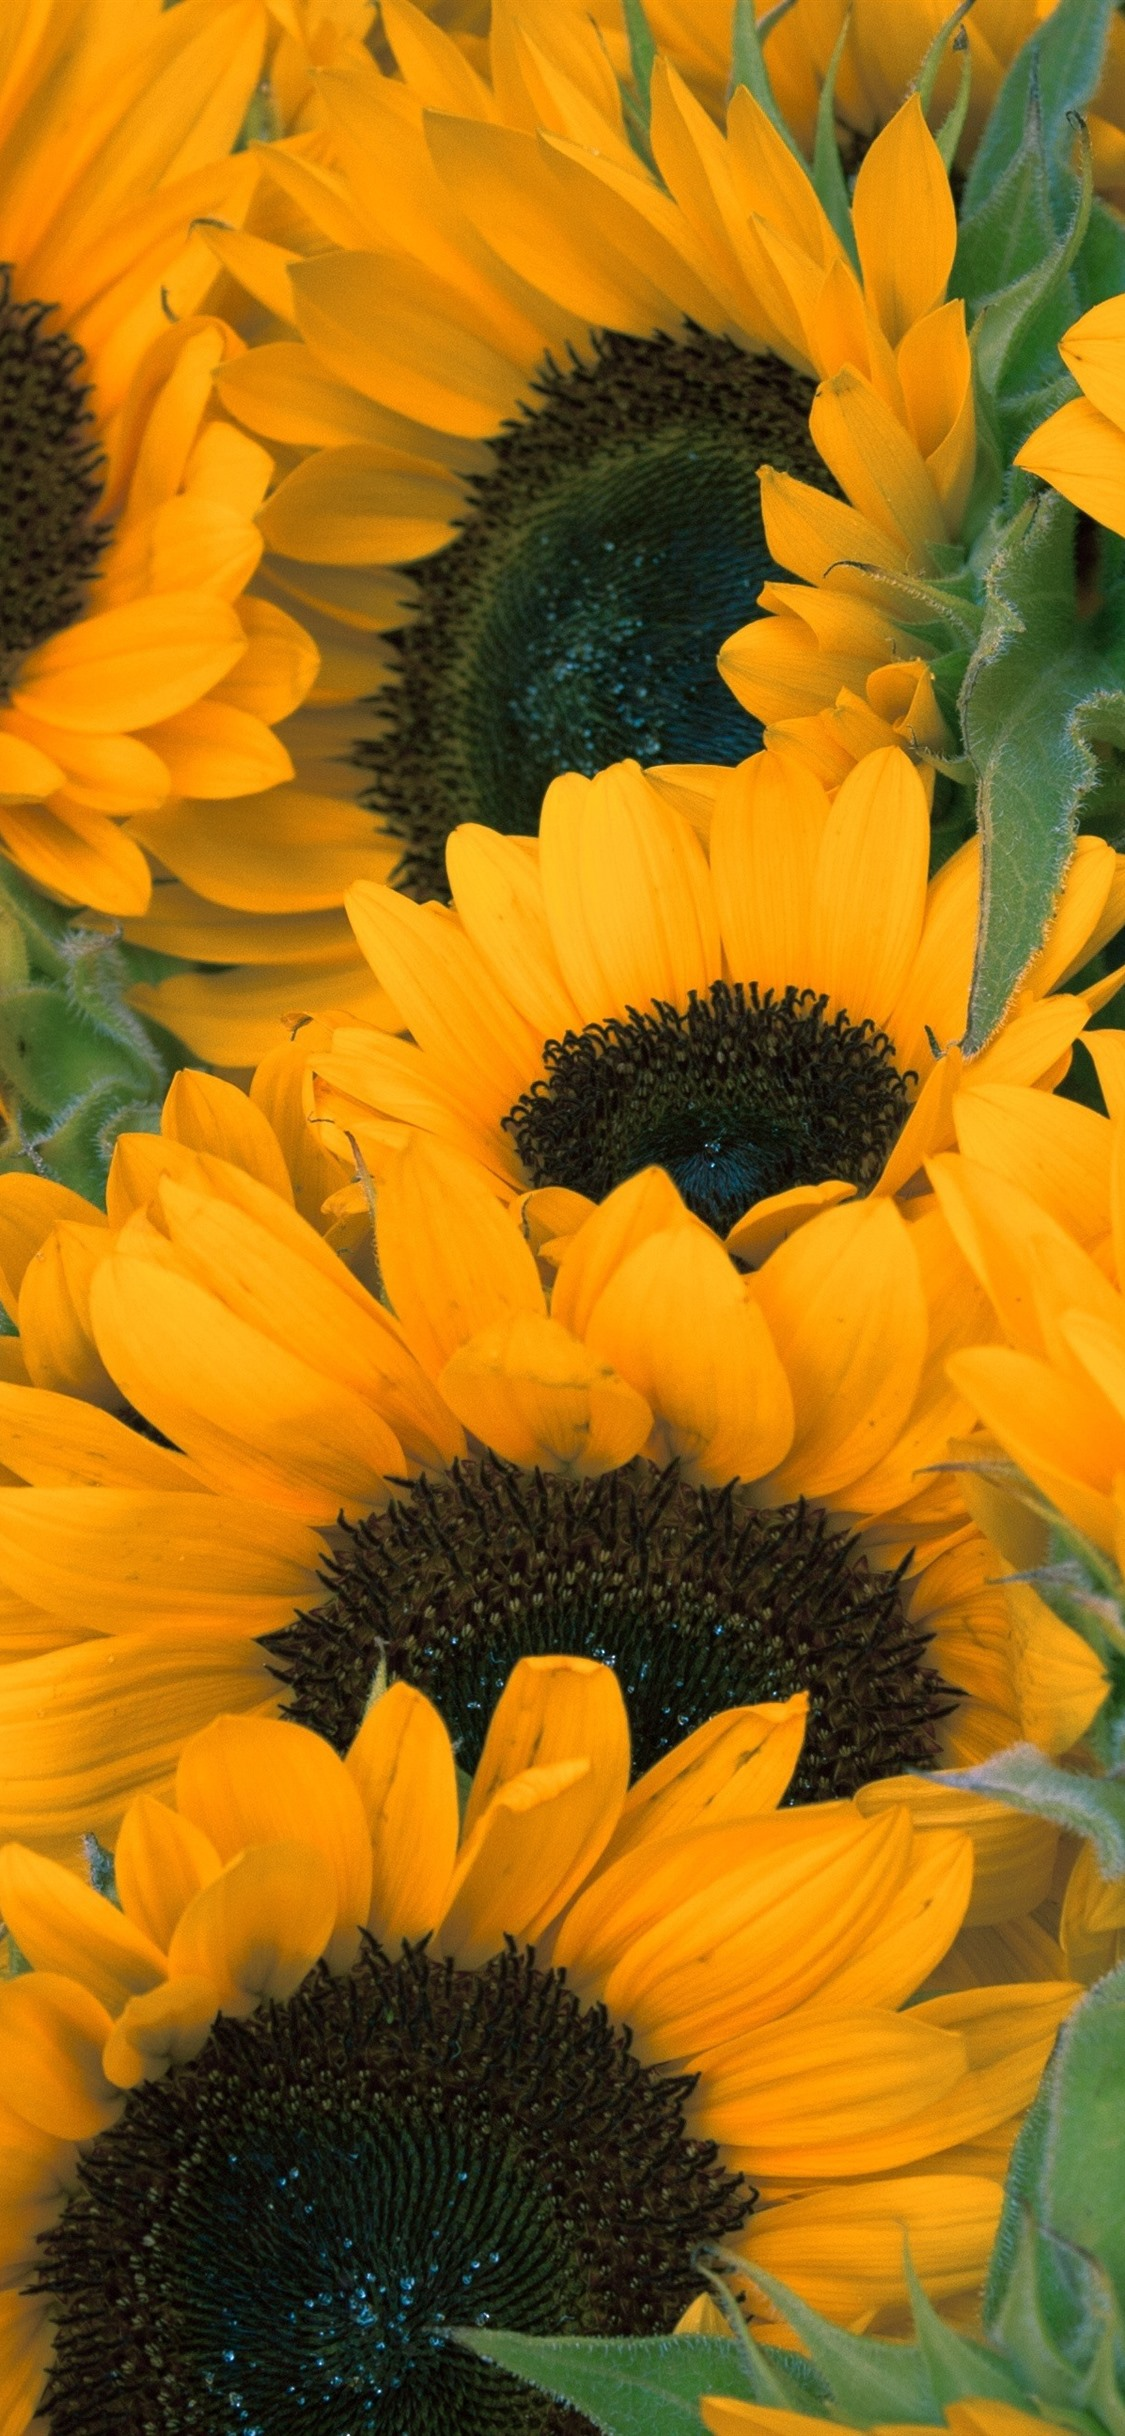 yellow flowers, summer 1125x2436 iPhone